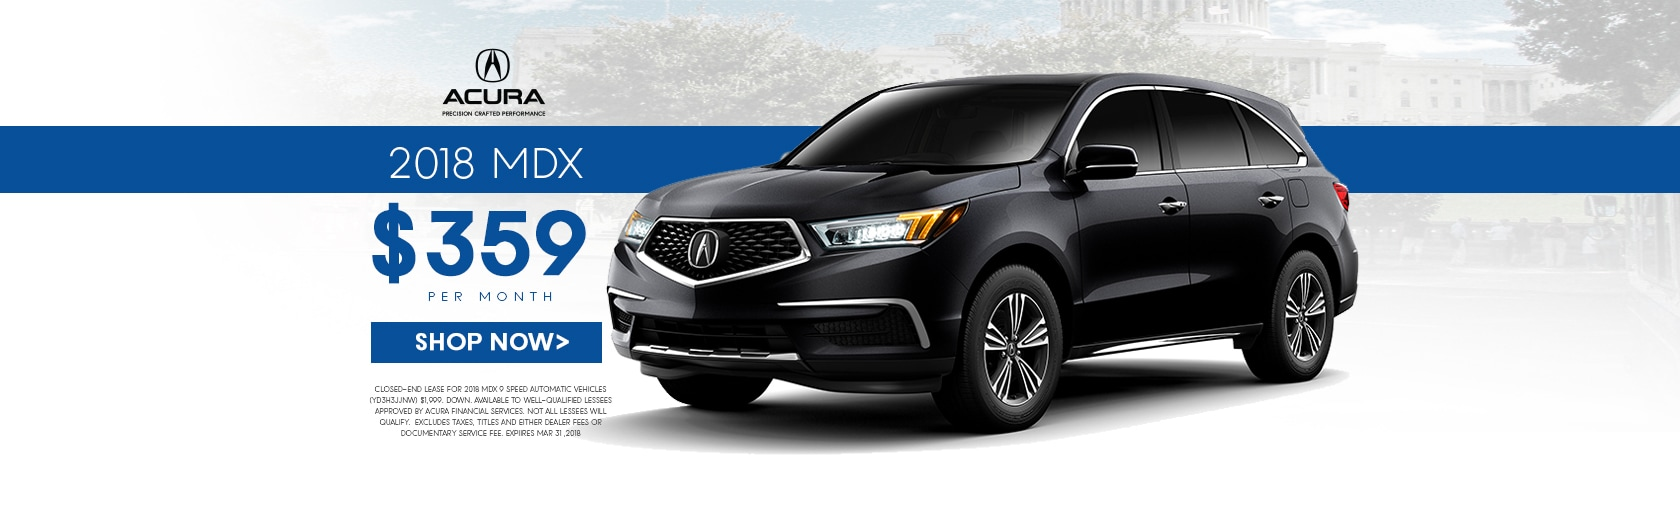 Coggin Acura Acura Dealer Fort Pierce Port St Lucie Jupiter - Acura dealer fort lauderdale